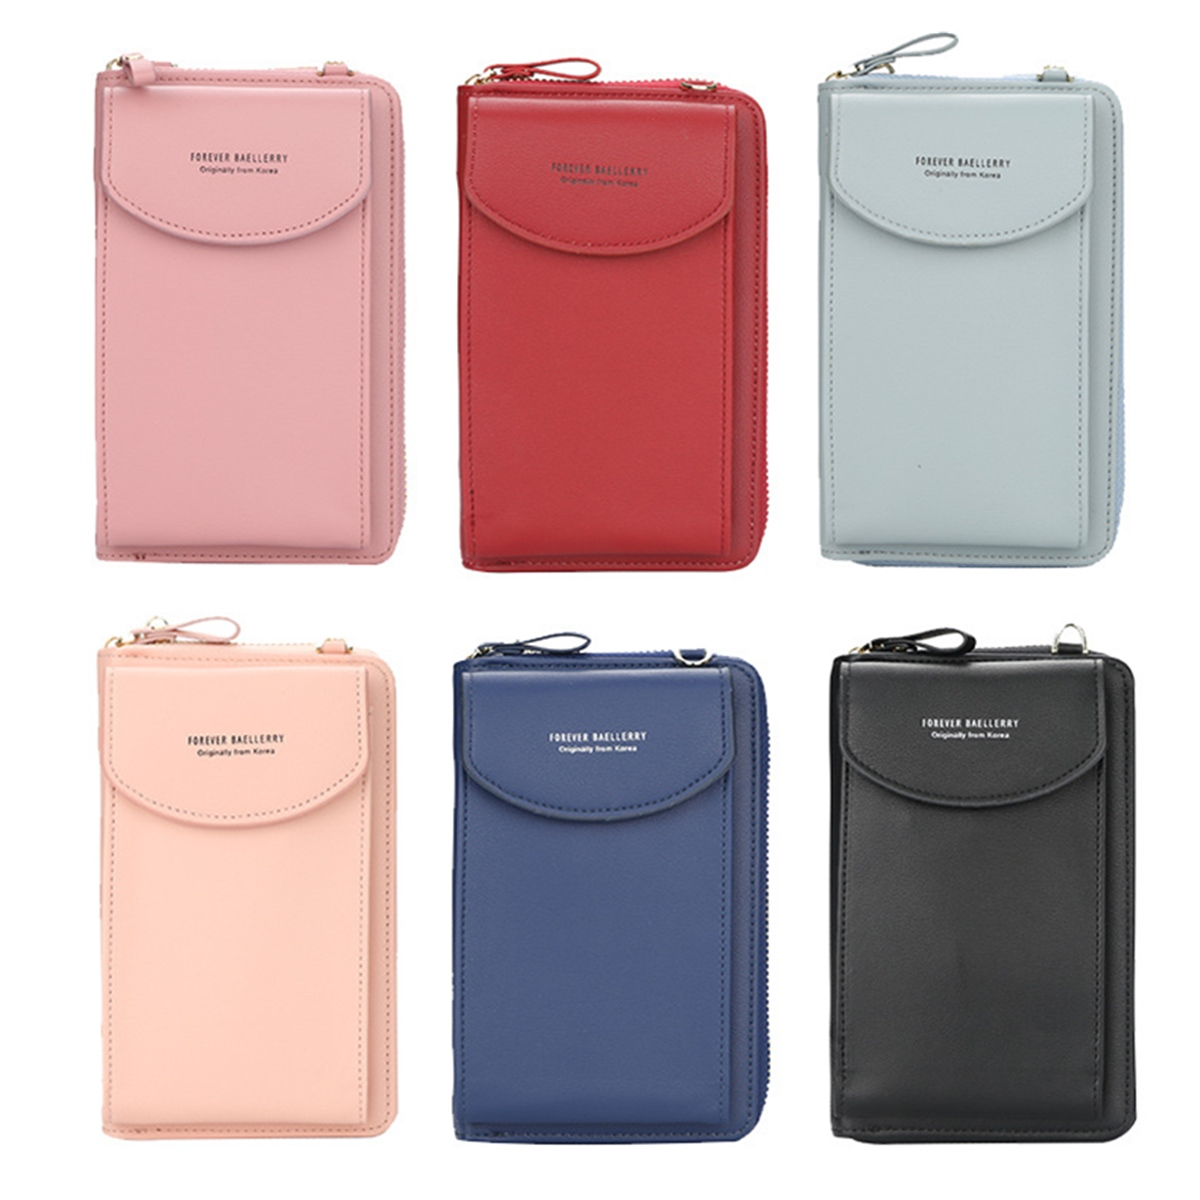 AEQUEEN Candy Colors Hand Bags 2019 Women Small Handbag Female Long Purse Coin Cell Phone Mobile Phone Crossbody Shoulder BagAEQUEEN Candy Colors Hand Bags 2019 Women Small Handbag Female Long Purse Coin Cell Phone Mobile Phone Crossbody Shoulder Bag